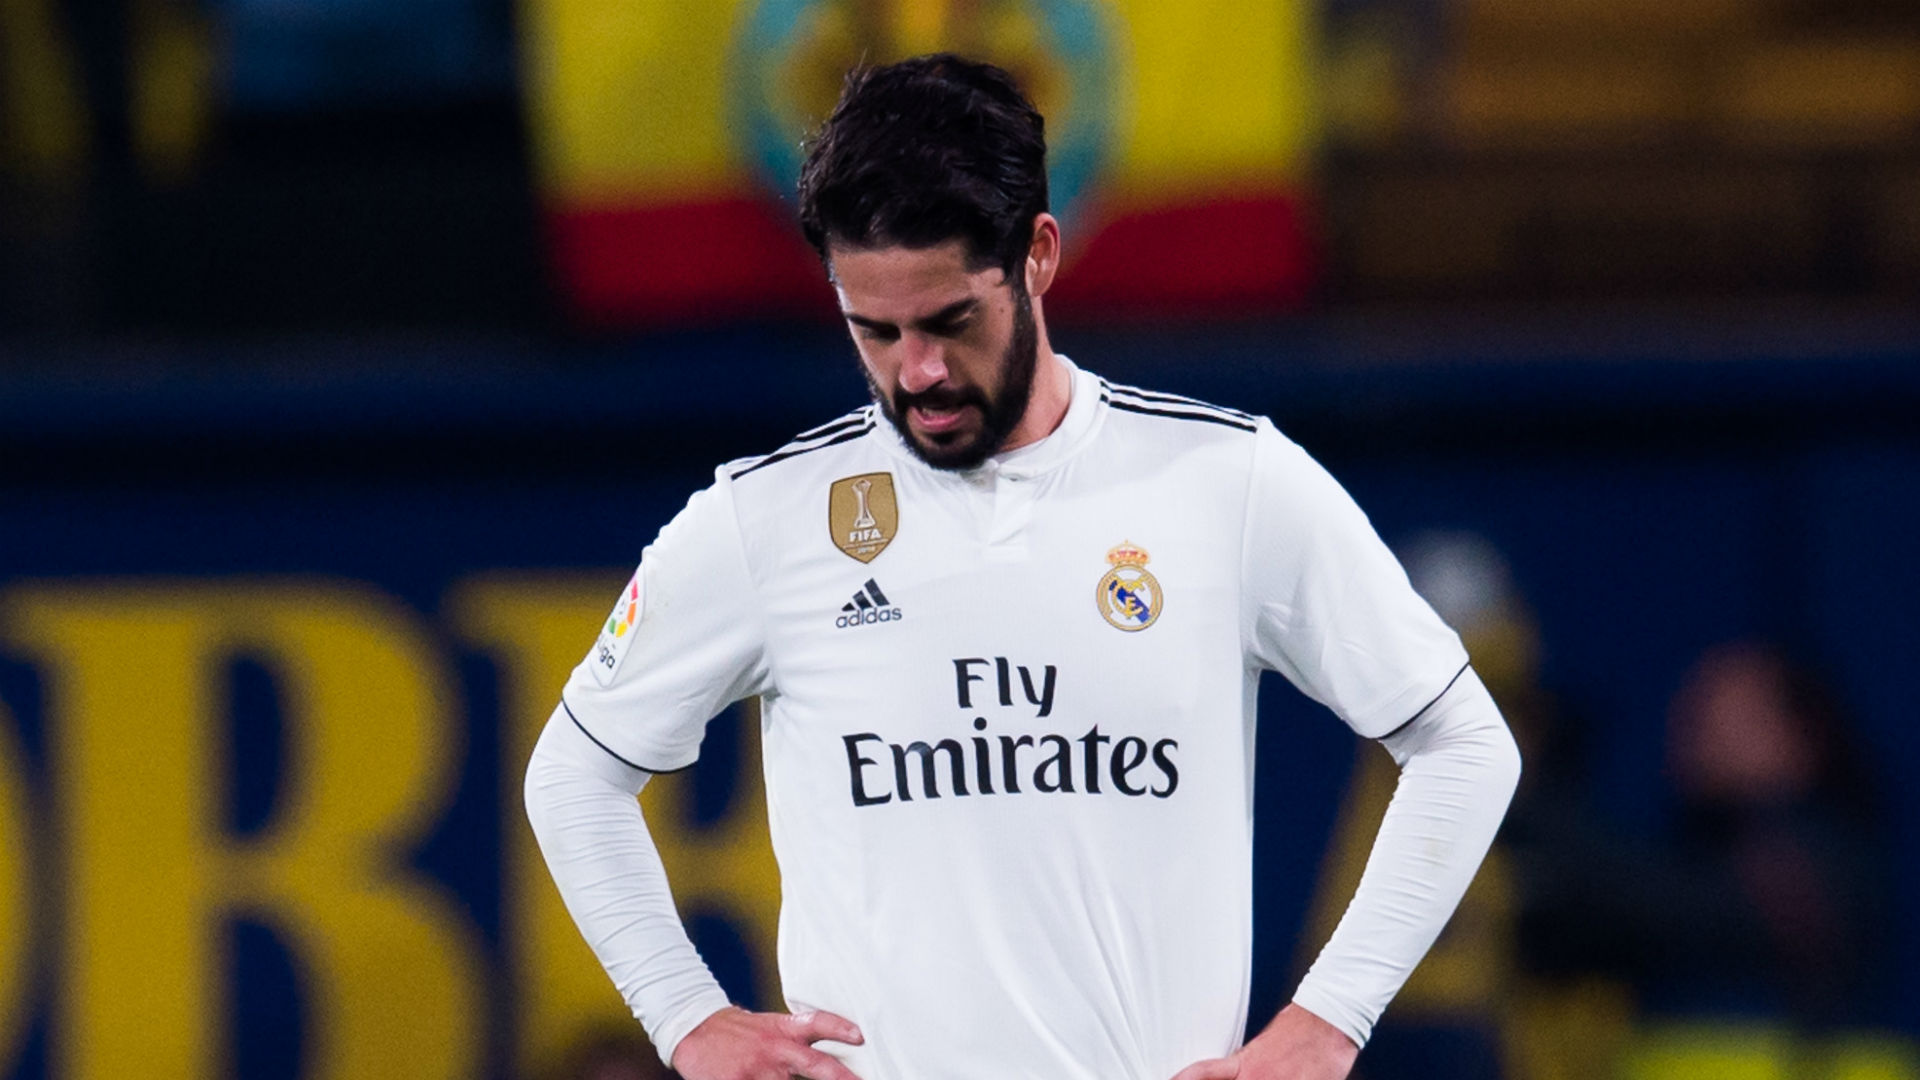 Isco left out of Spain squad